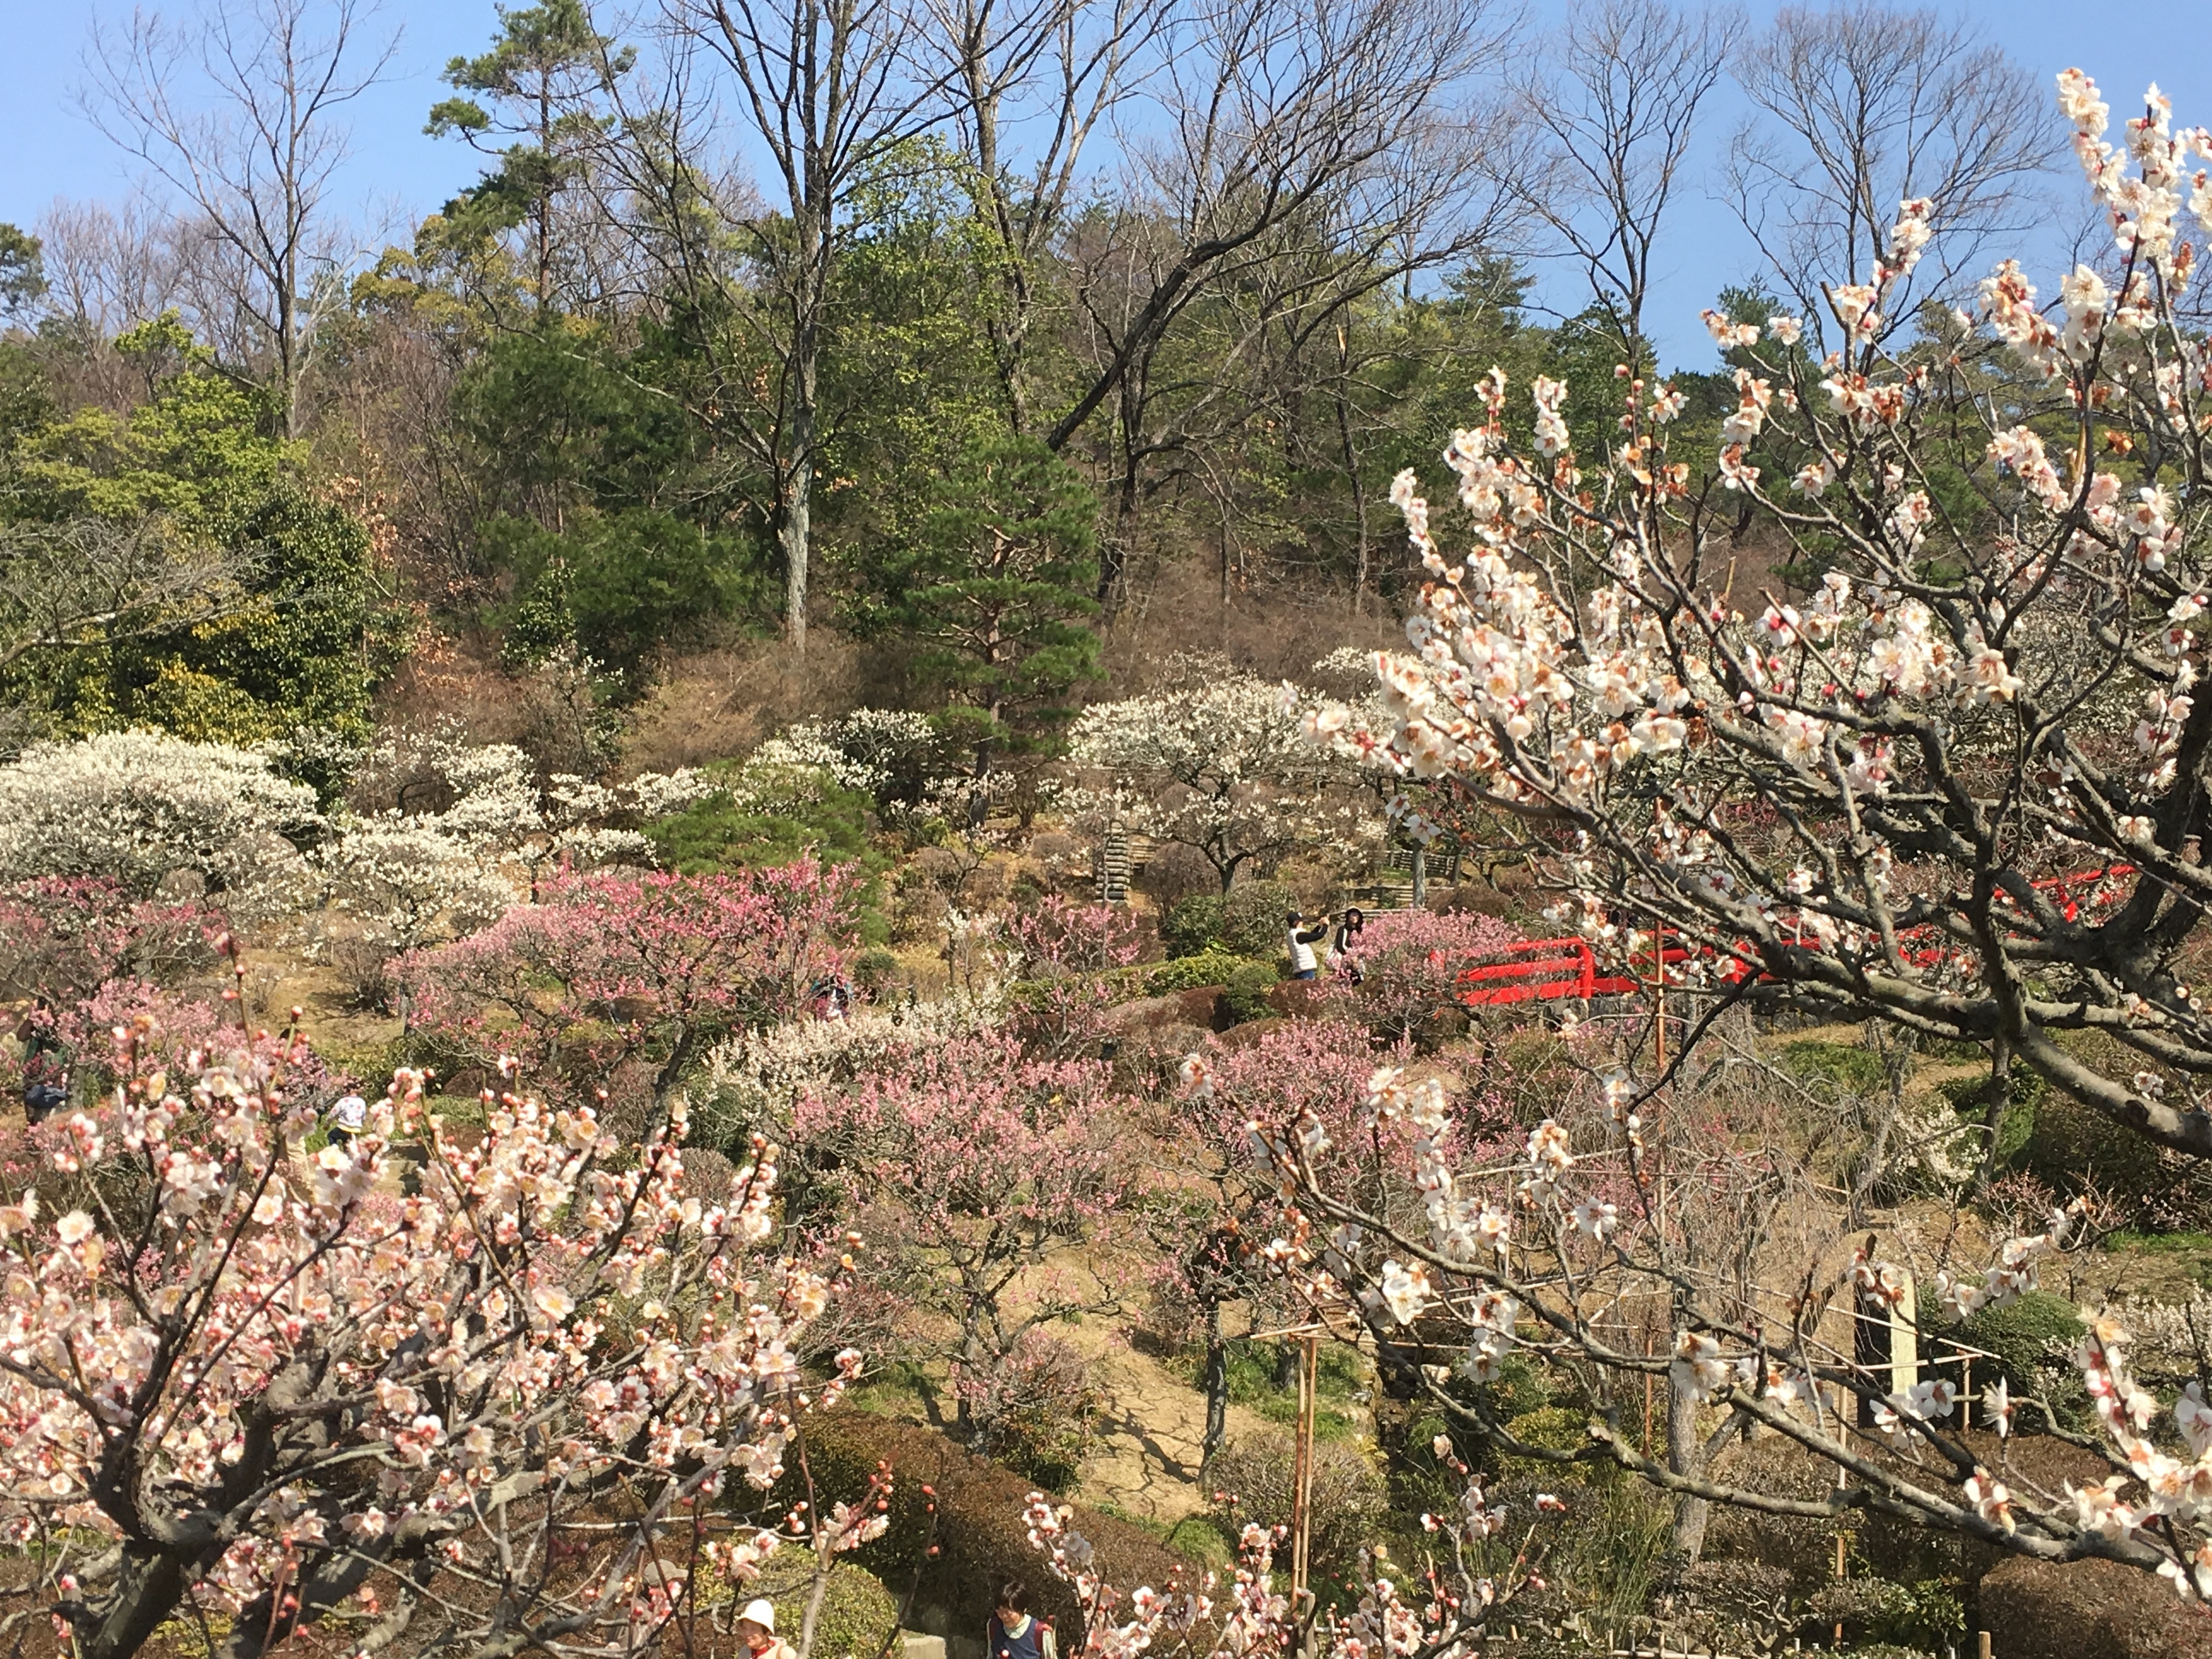 flowering pink and white Japanese plum trees and a vermilion bridge in the background